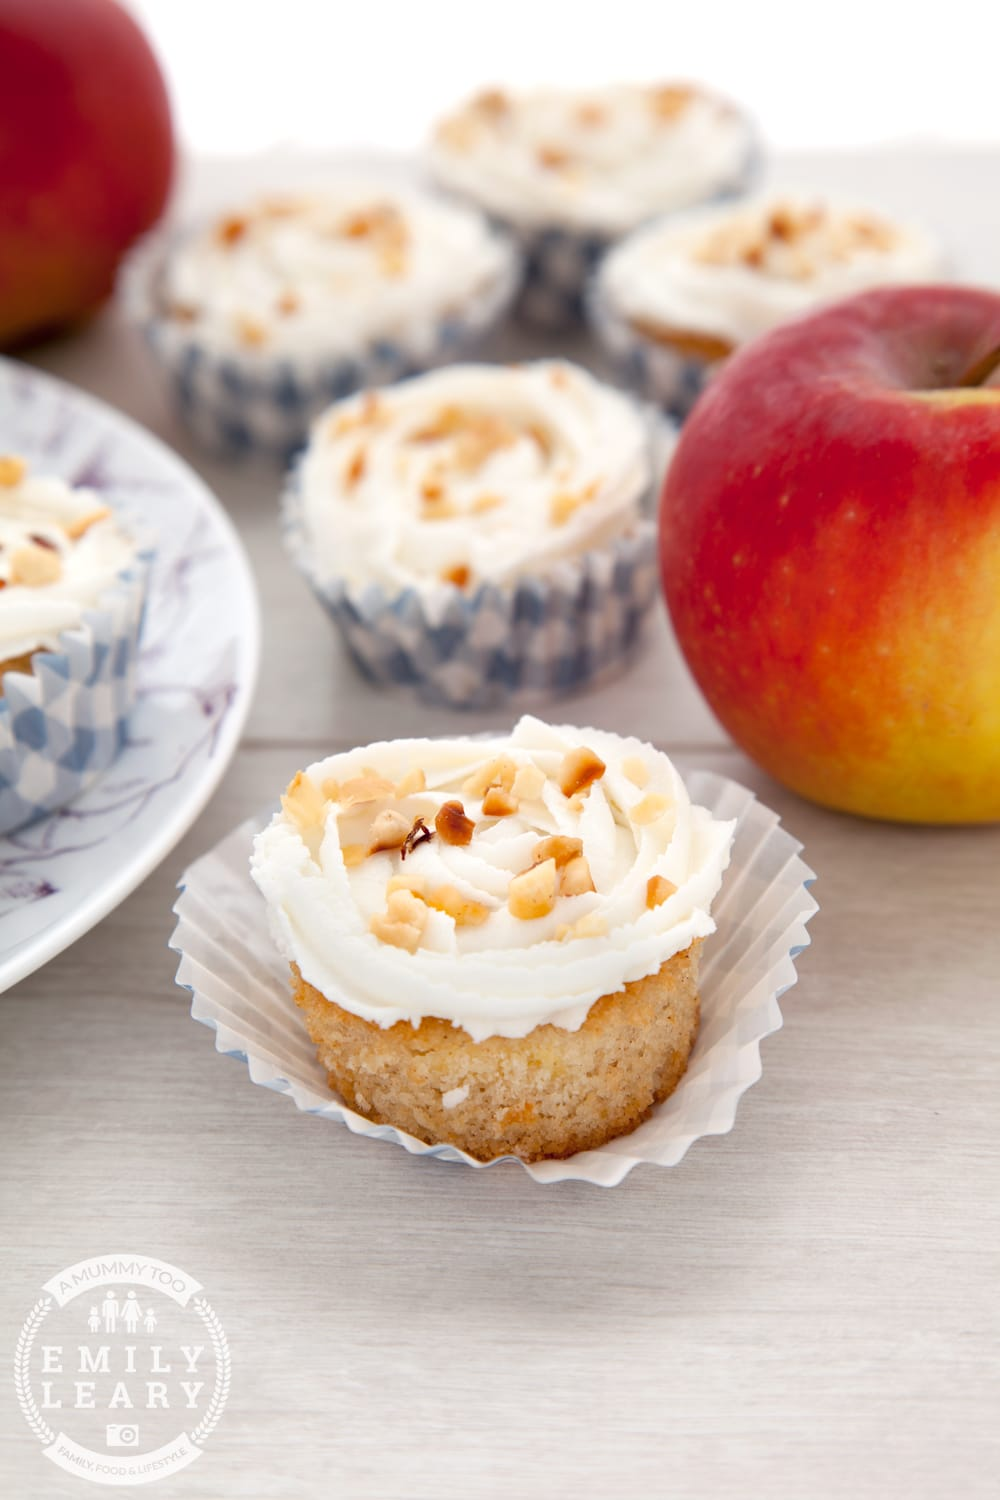 Gluten-free apple and cinnamon cupcakes with a goat's butter frosting - a delicious, light cupcake recipe